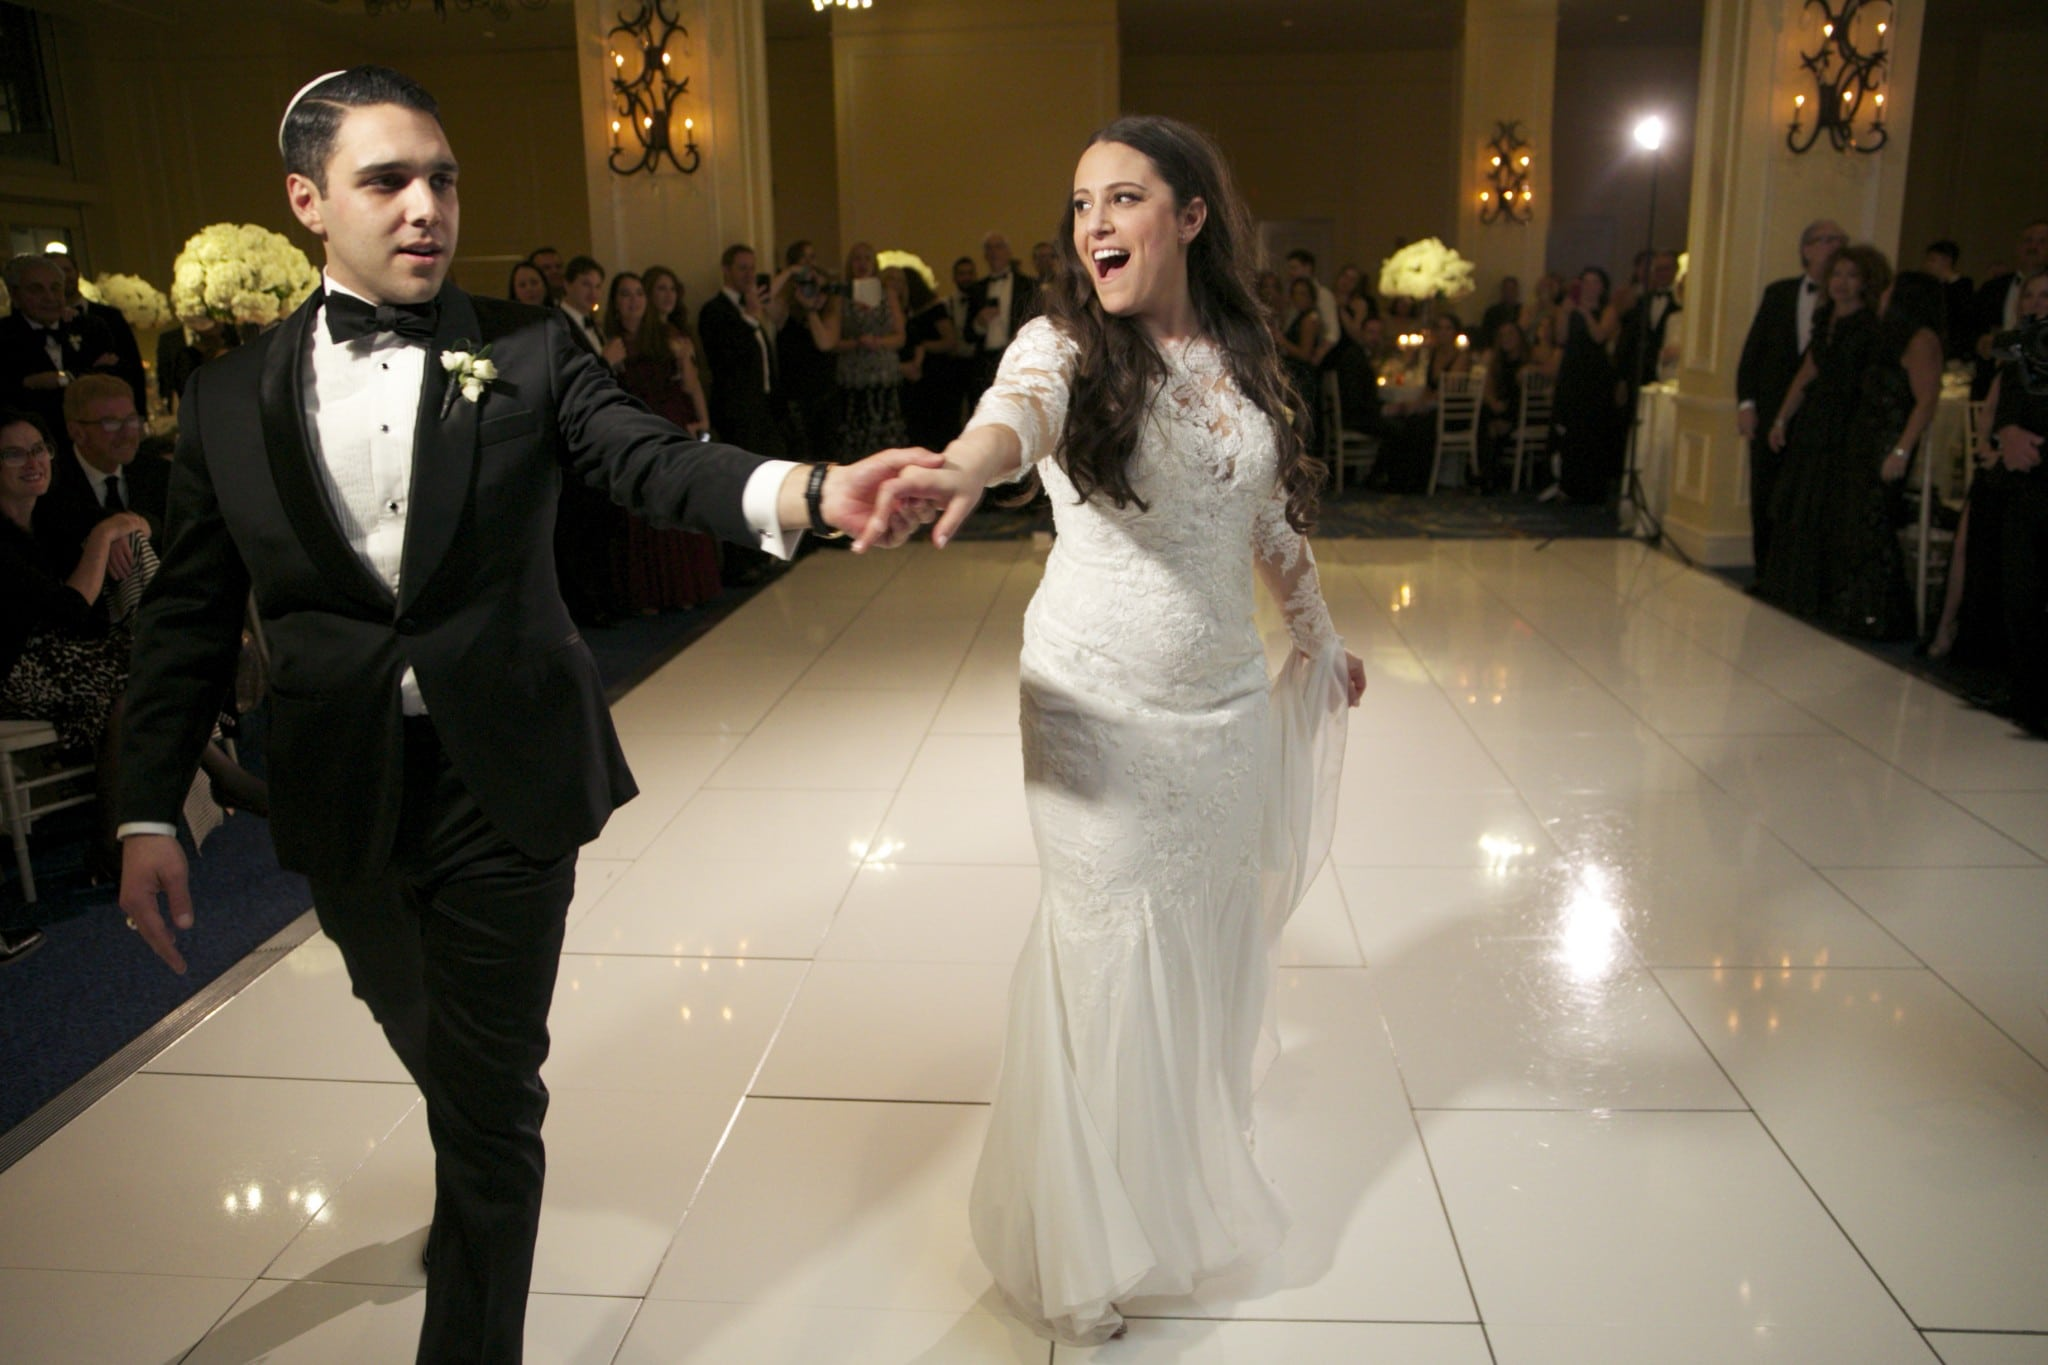 First dance with Fleetwood Mac and Night Shift